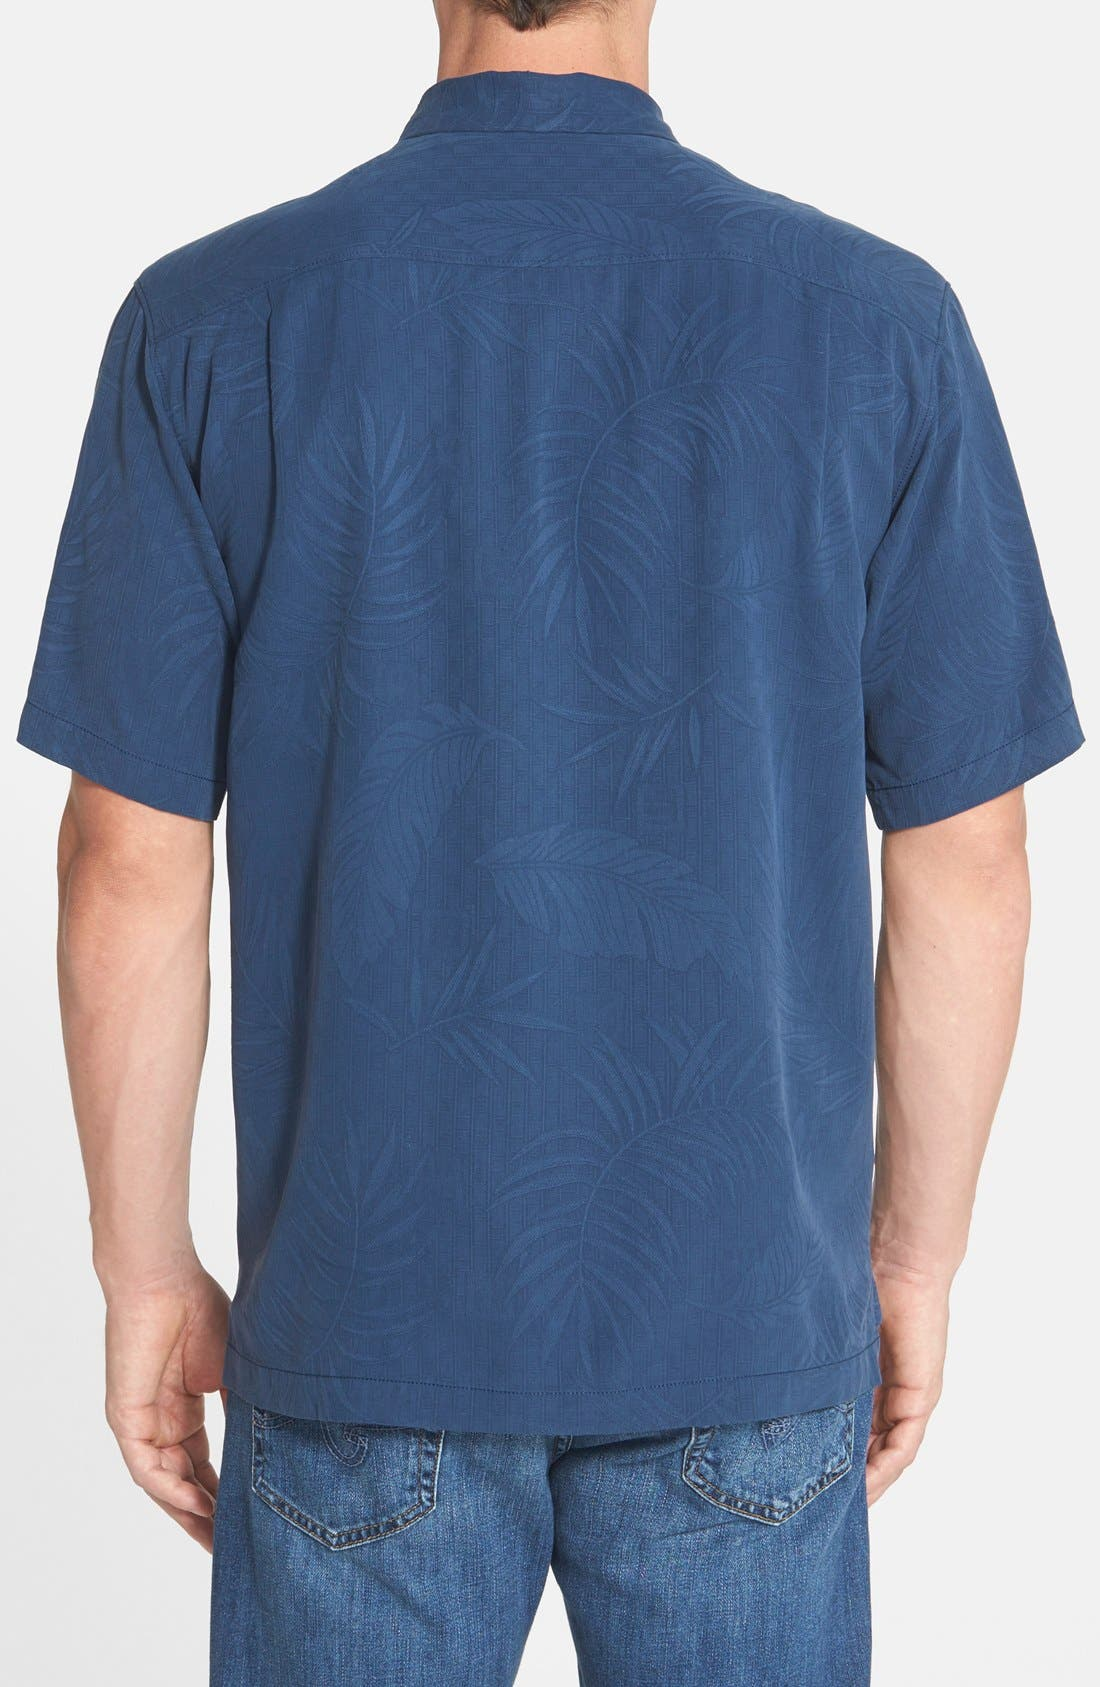 'Tiki Palms' Original Fit Jacquard Silk Camp Shirt,                             Alternate thumbnail 9, color,